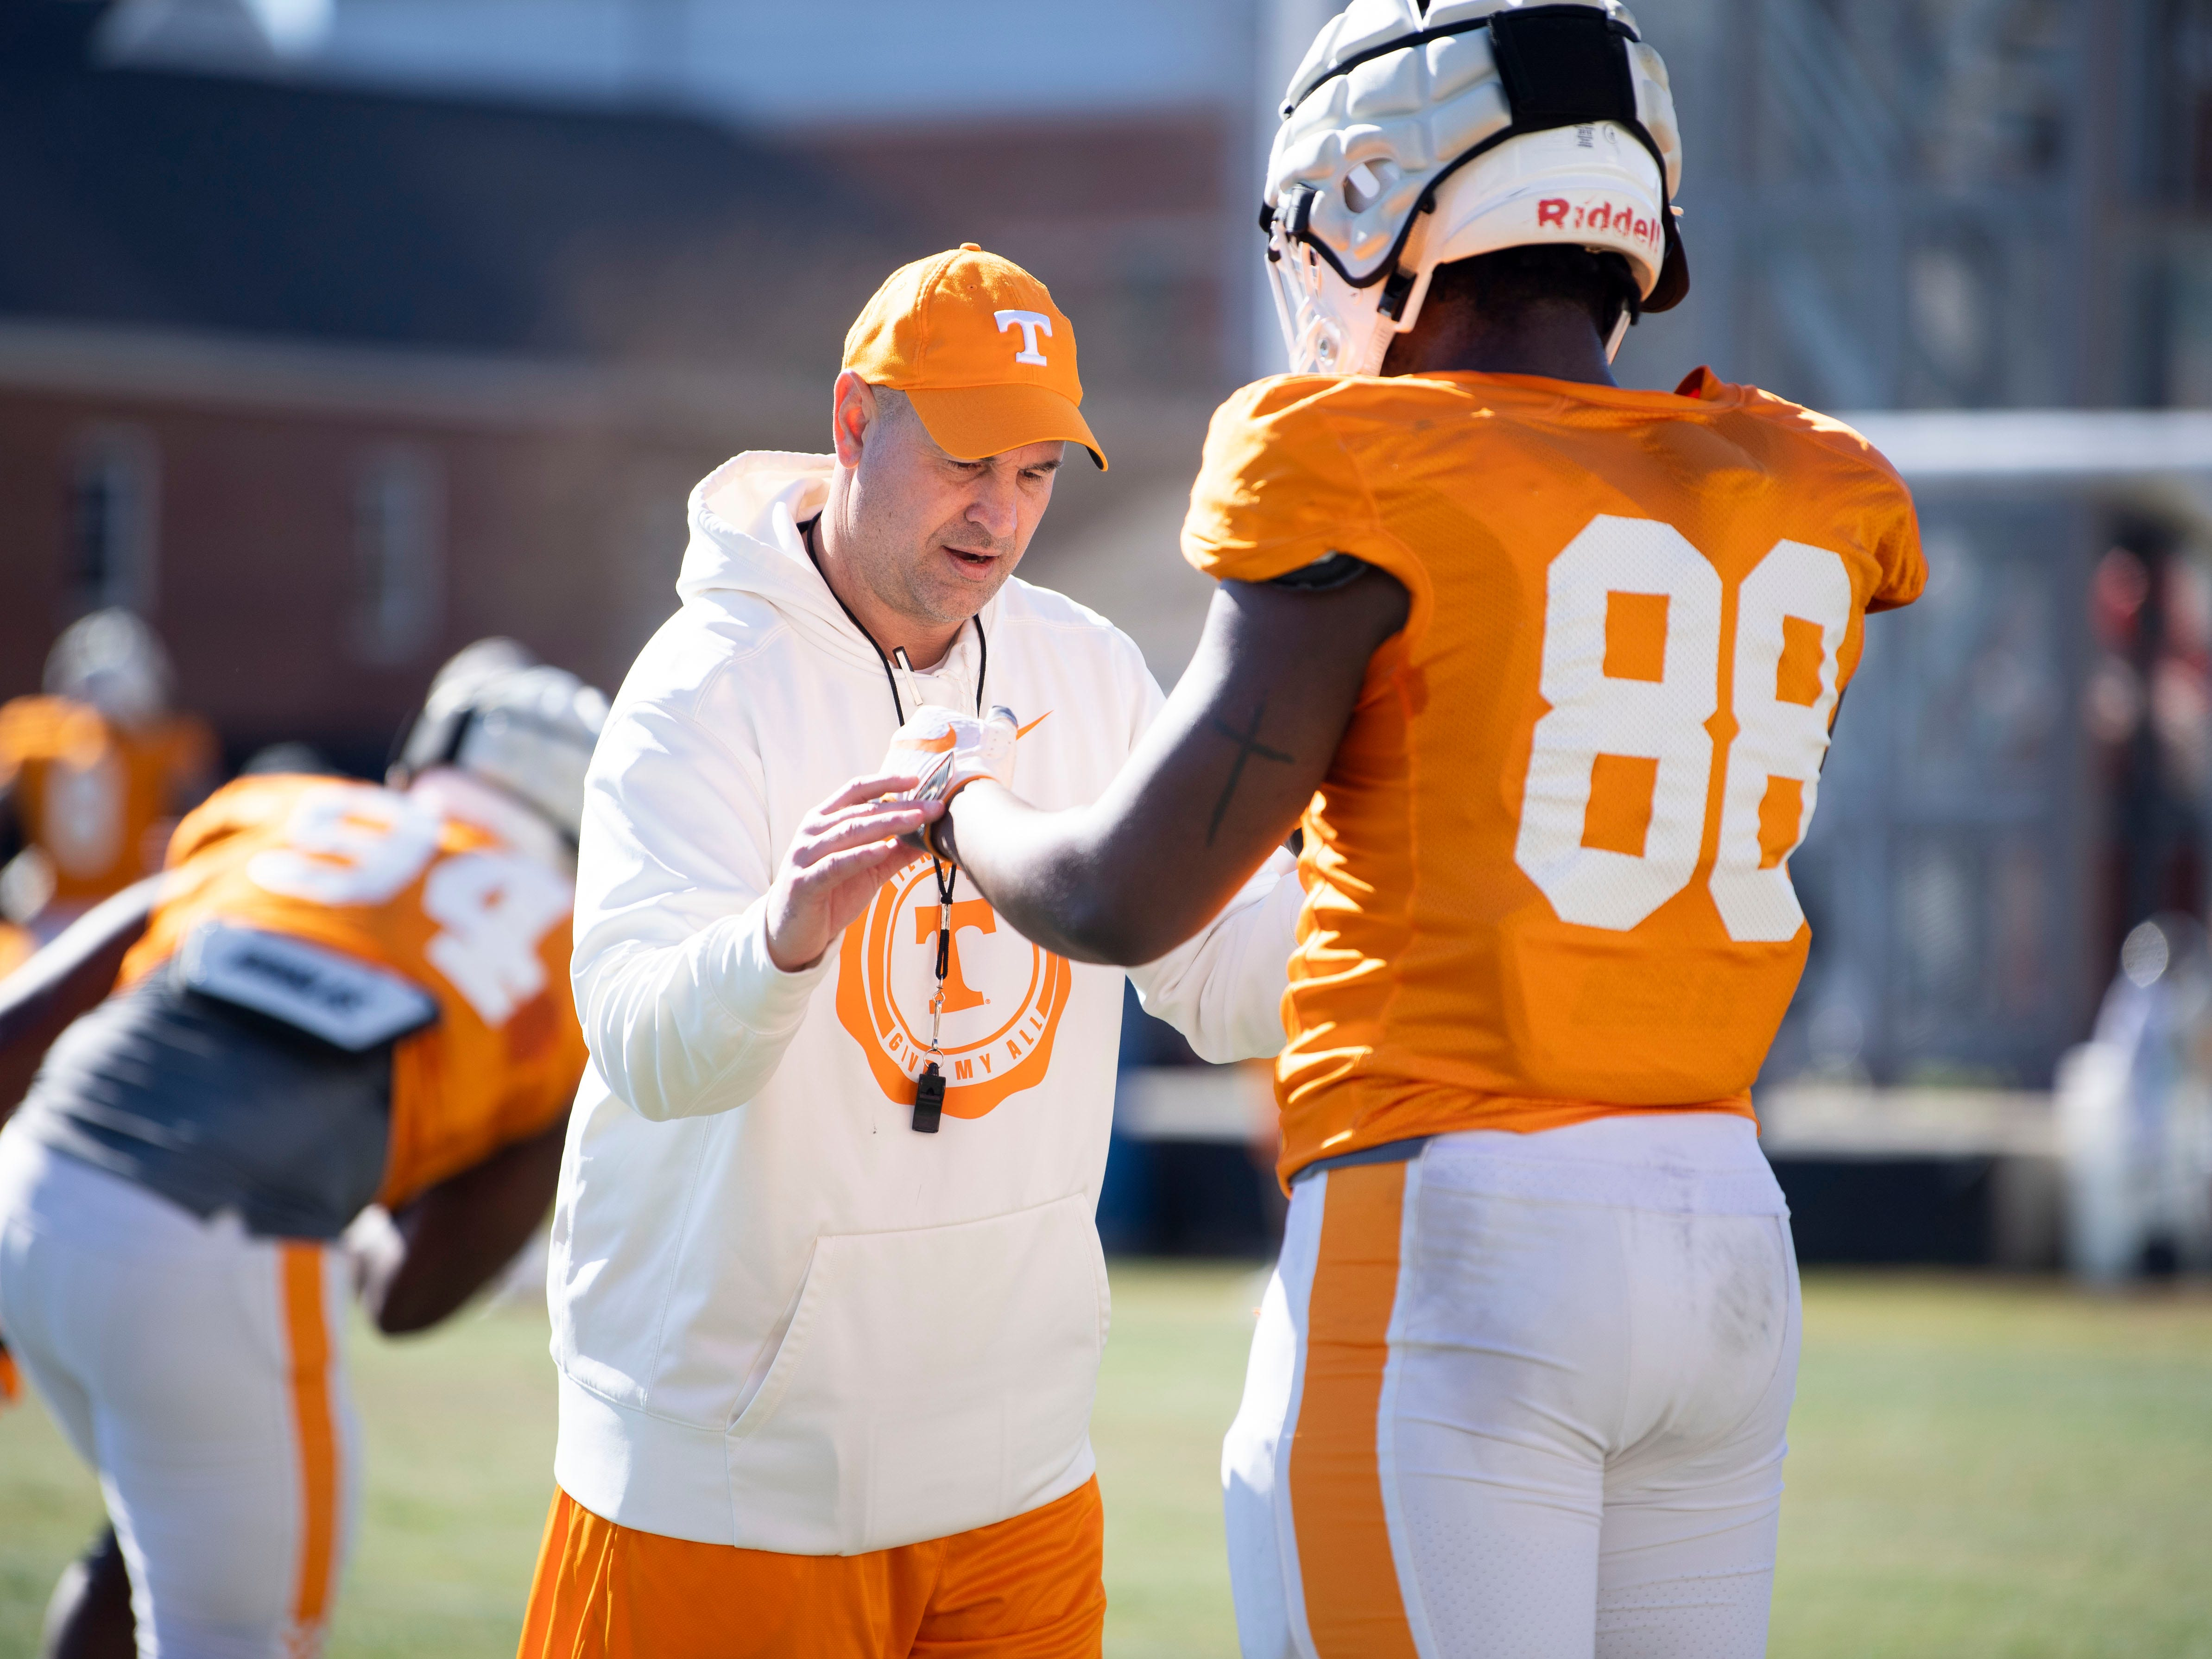 Tennessee football coach Jeremy Pruitt with defensive lineman LaTrell Bumphus (88) at practice on Friday, March 15, 2019.